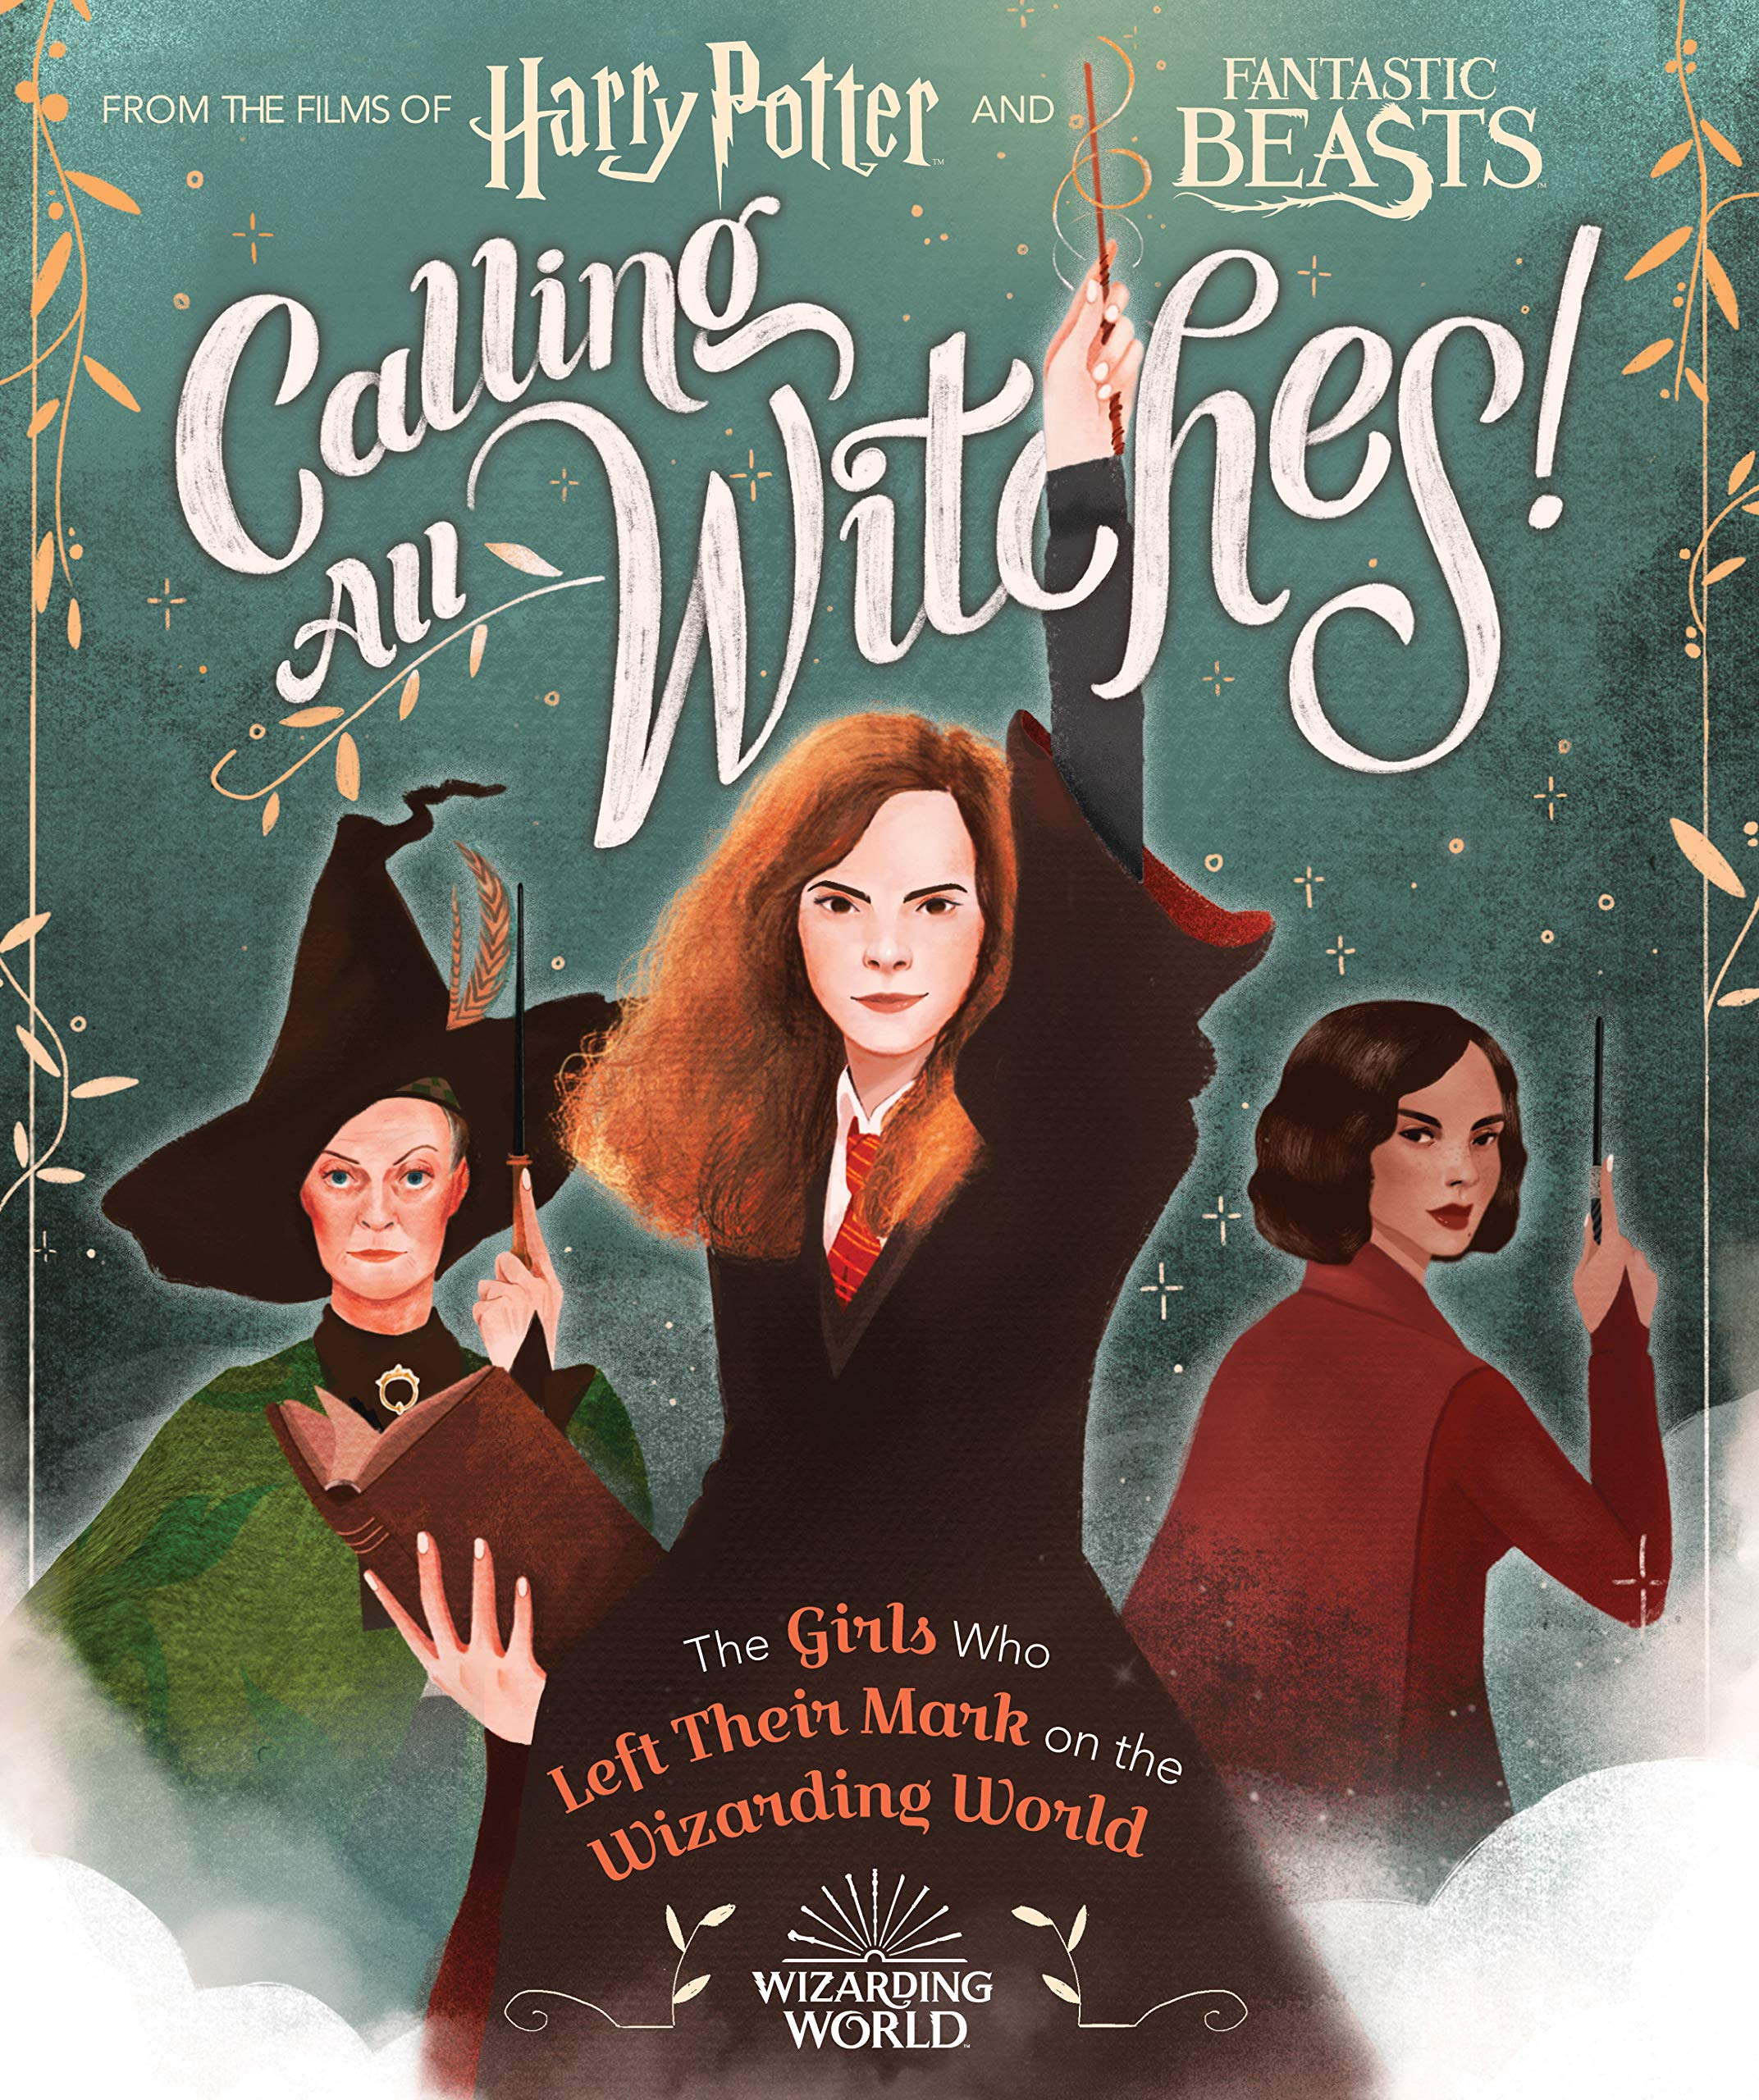 Calling All Witches! The Girls Who Left Their Mark on the Wizarding World (Harry Potter and Fantastic Beasts): Calkhoven, Laurie, Tobacco, Violet: 9781338322972: Amazon.com: Books